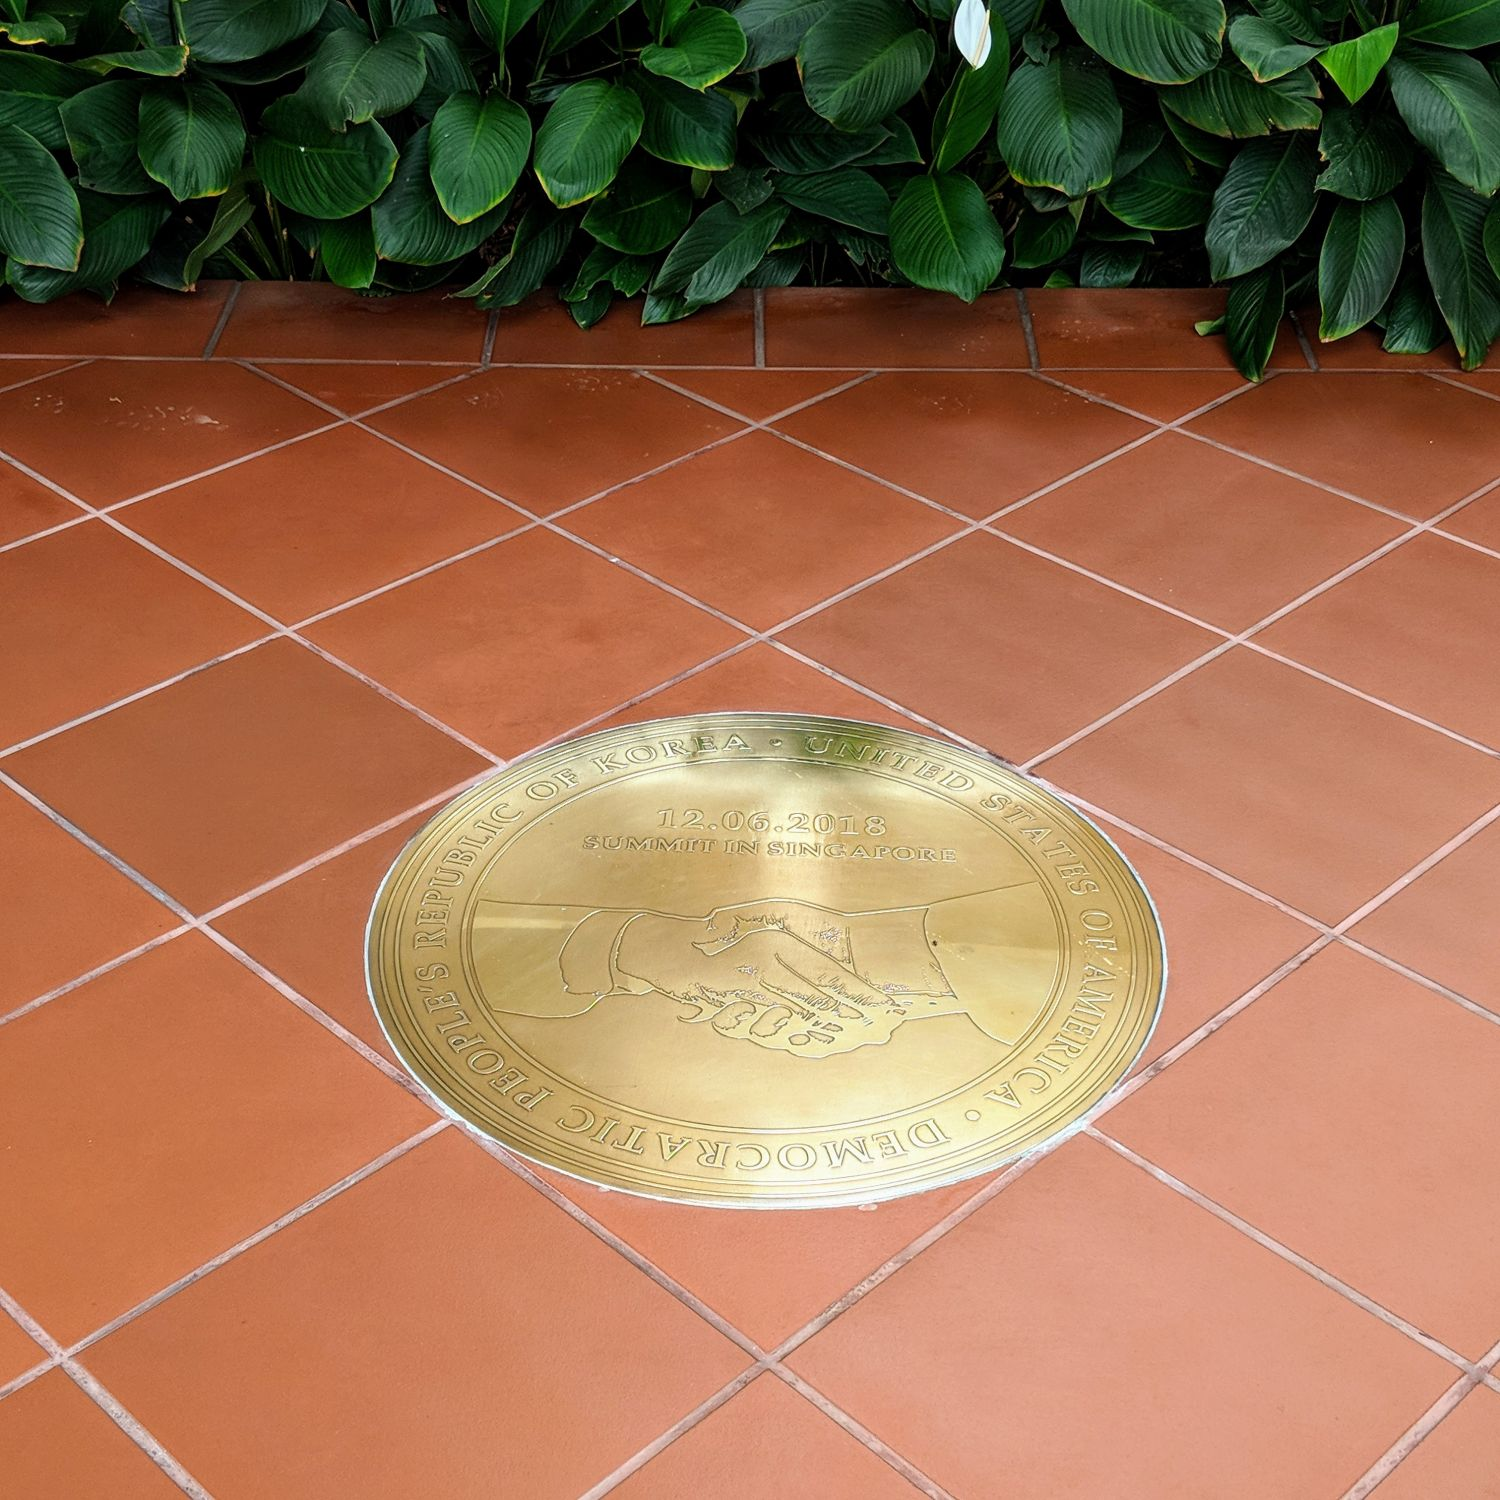 capella singapore Trump-Kim Summit Commemorative Plaque